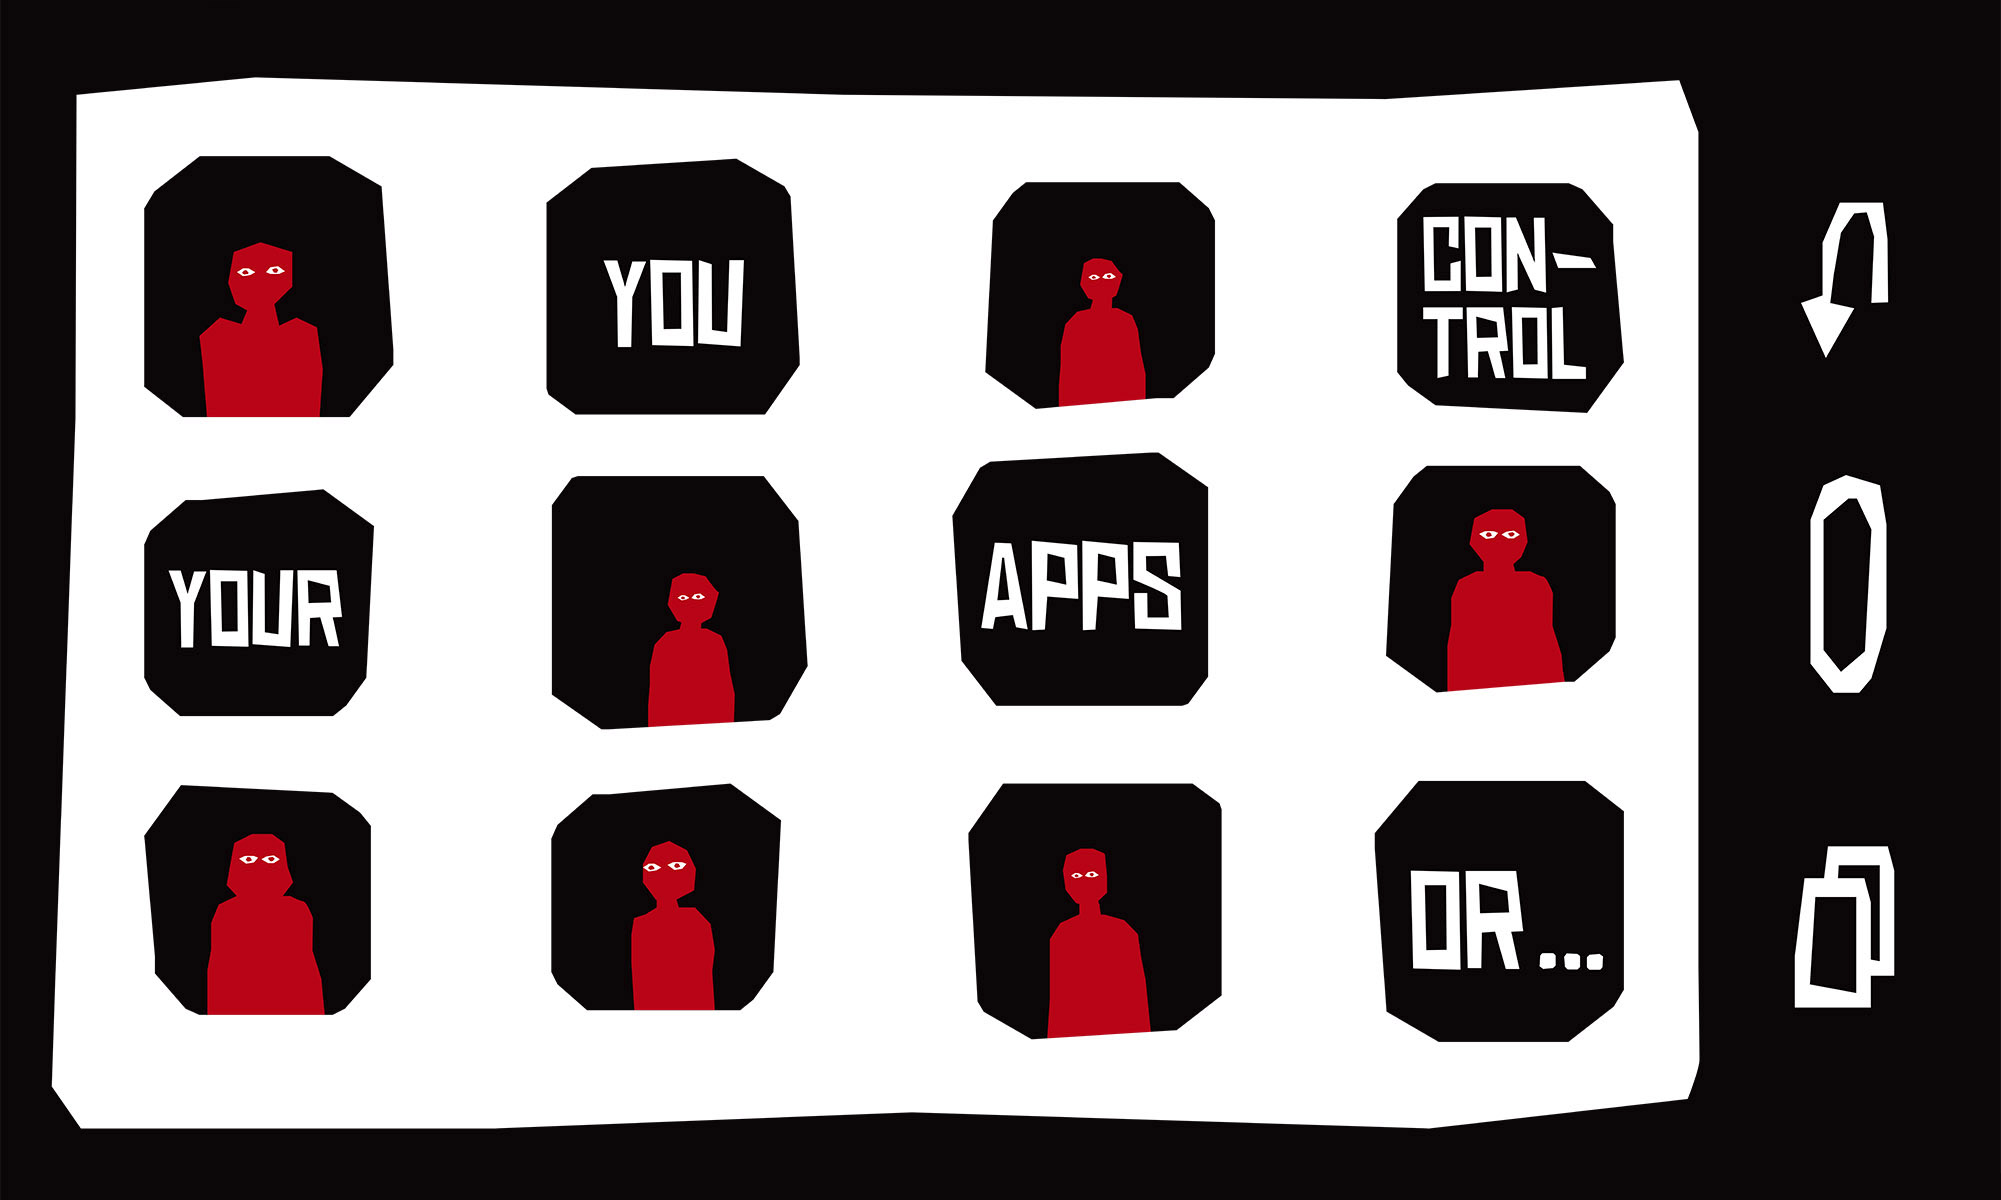 You control your apps or...